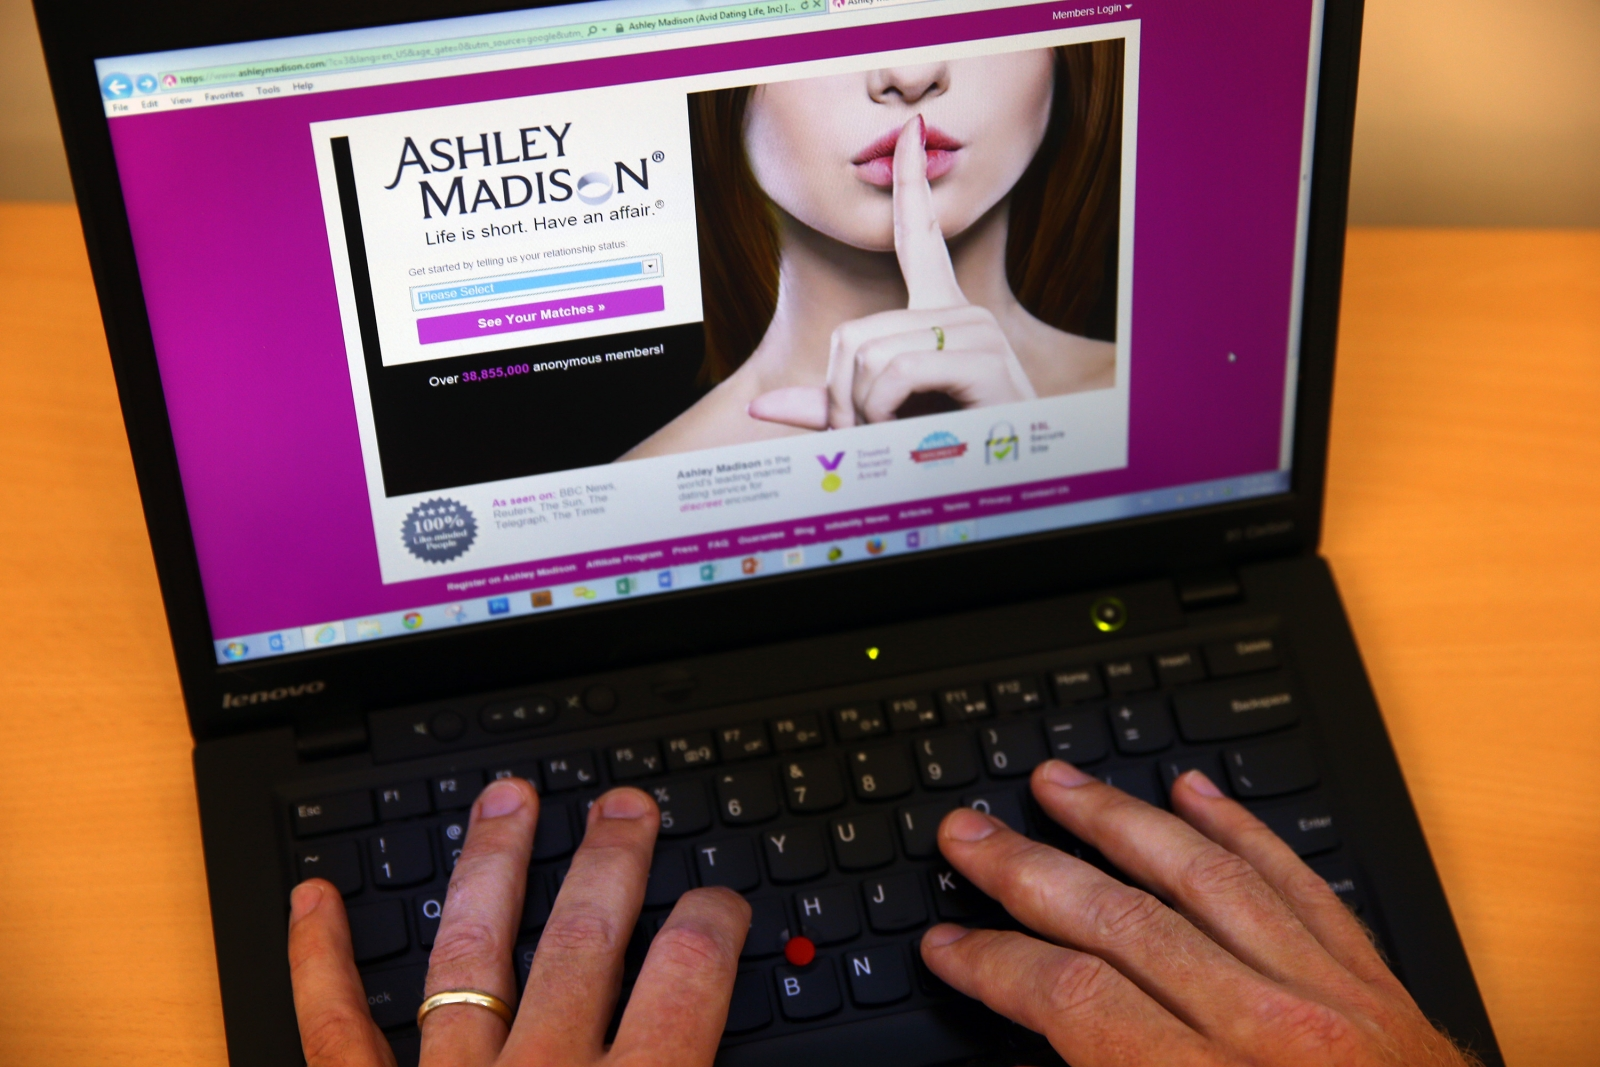 Ashley Madison computer